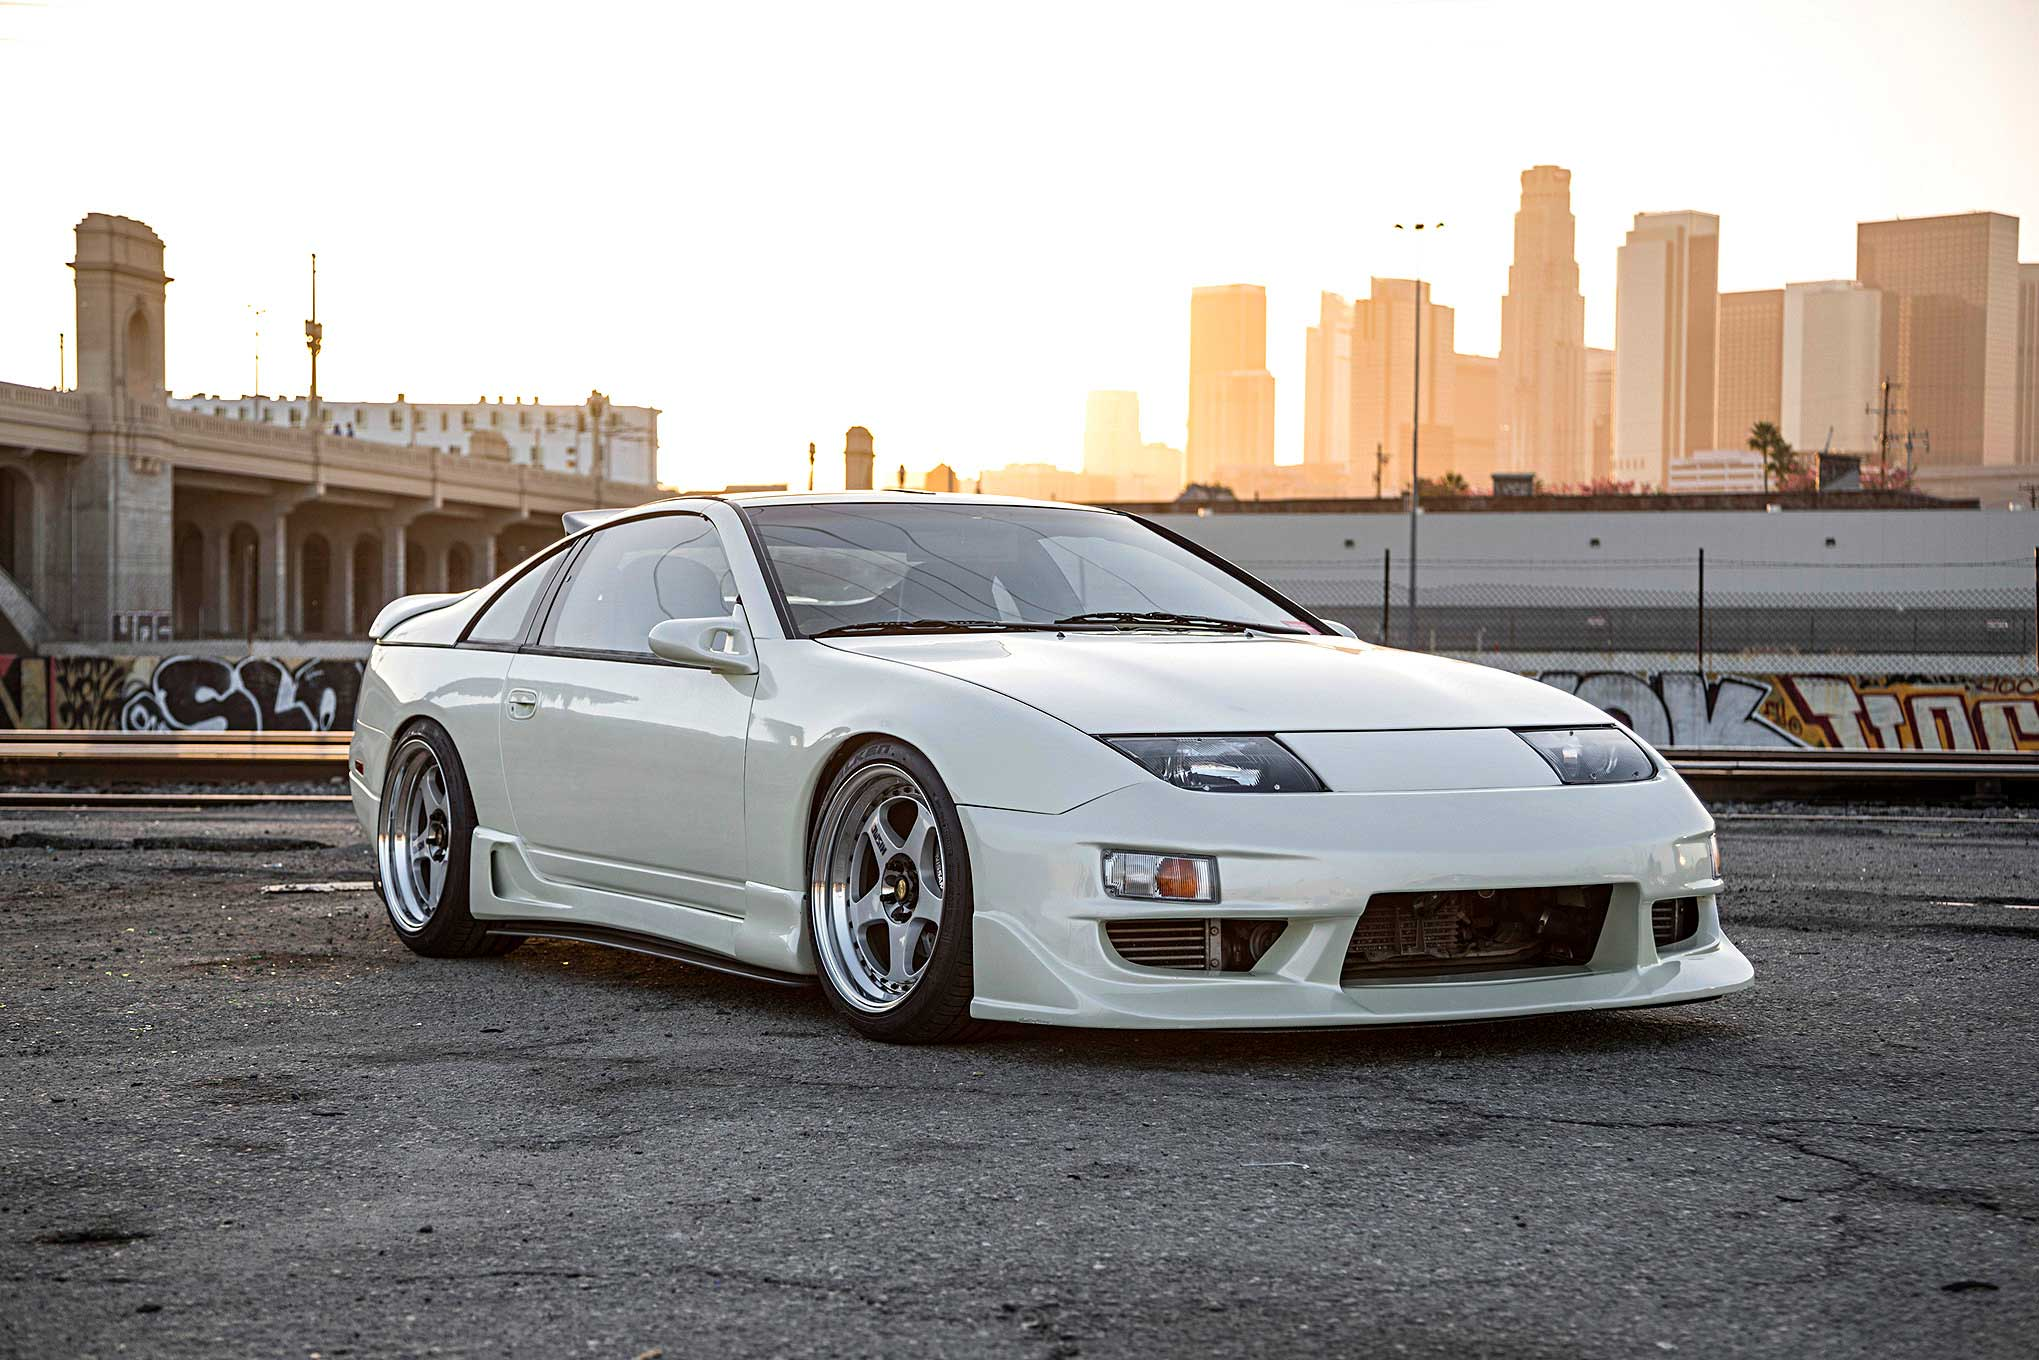 1991 nissan 300zx twin turbo timeless lines nissan 300zx with twin turbo ls3